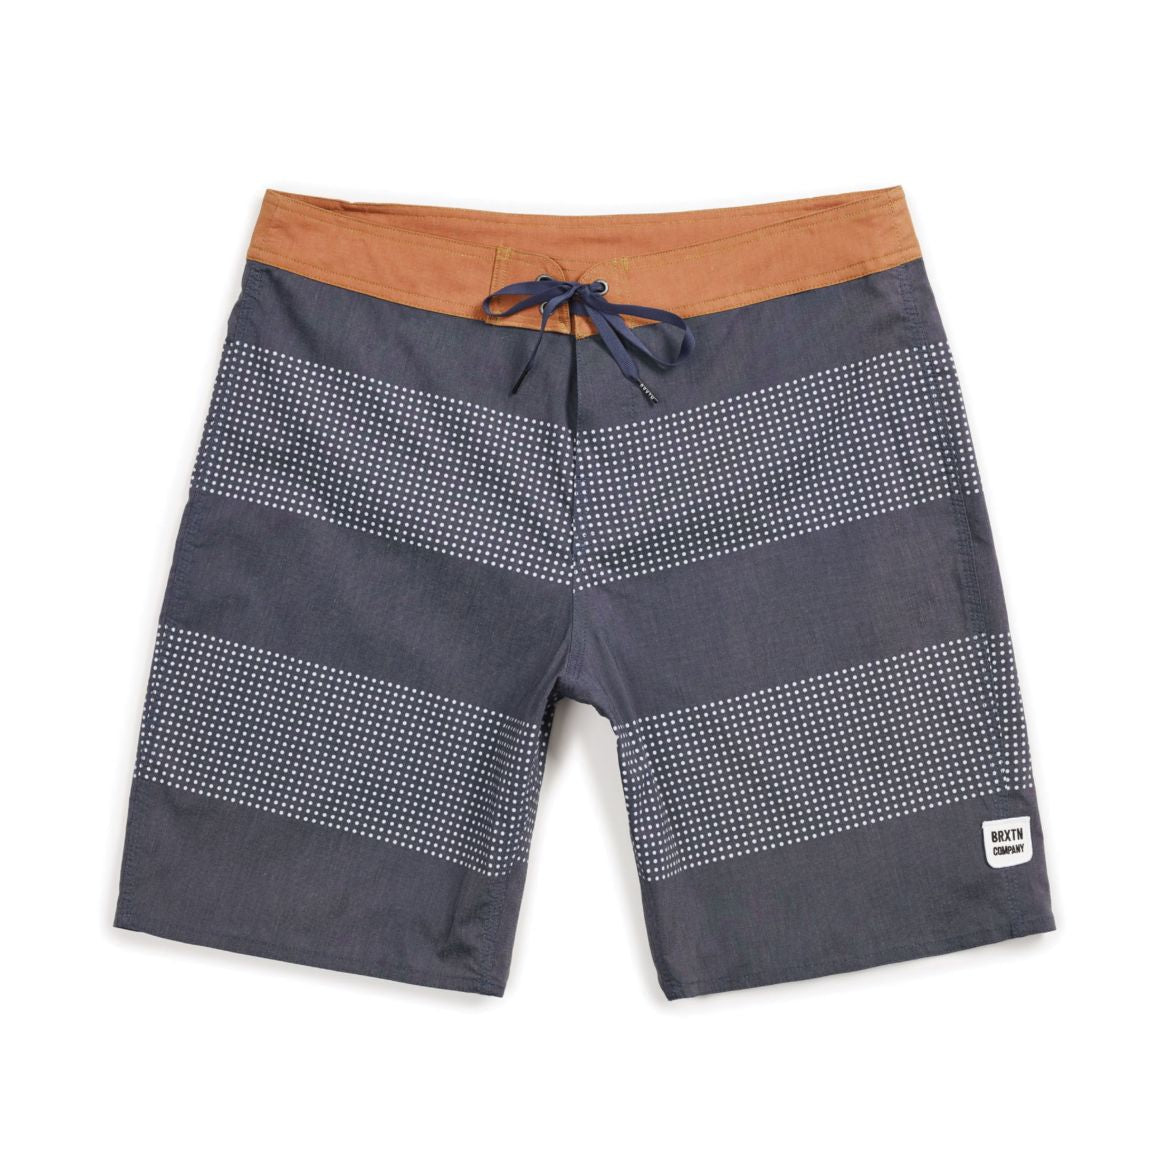 get $5 off boardshorts at 88 Gear